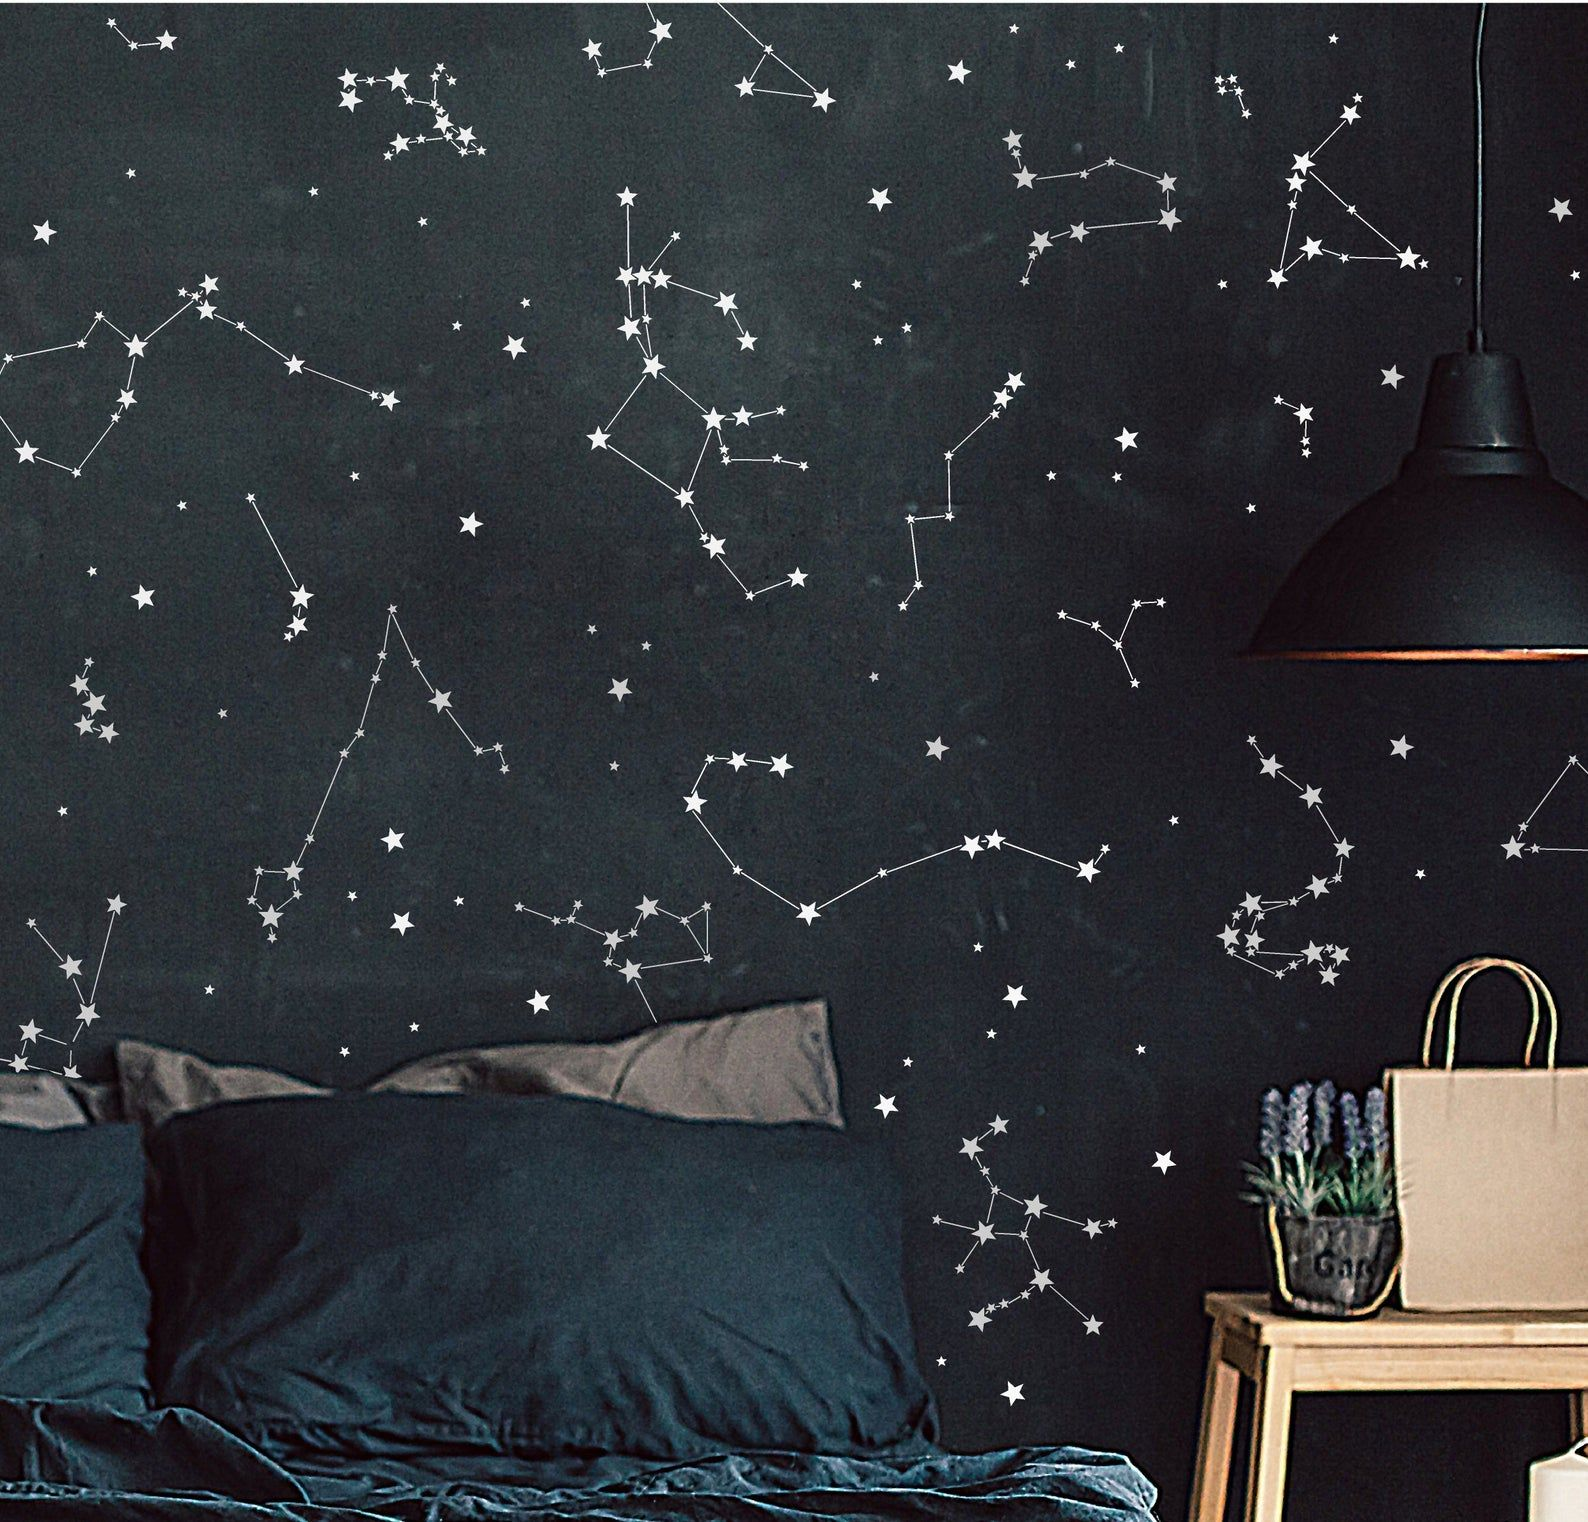 Constellation Stickers Constellation Decals Astronomy Wall Art Constellation Star Map Night Sky Constellations Zodiac Wall Art Virgo Constellation Wall Decal Constellation Decal Constellation Wall Art